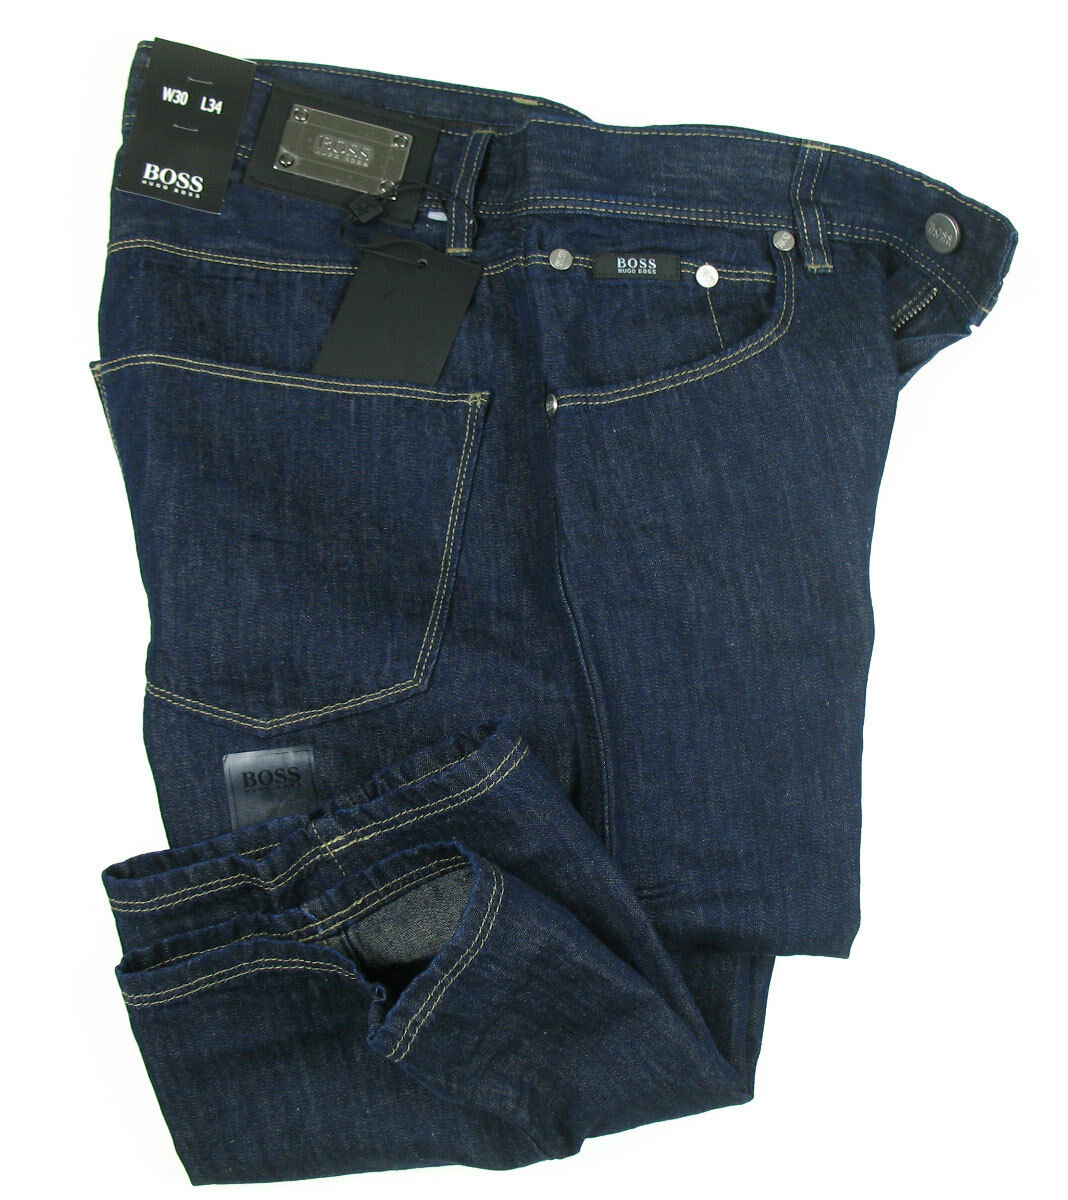 BOSS schwarz 5-Pocket Jeans OKLAHOMA in 30 34 navy Blau 33% Leinen